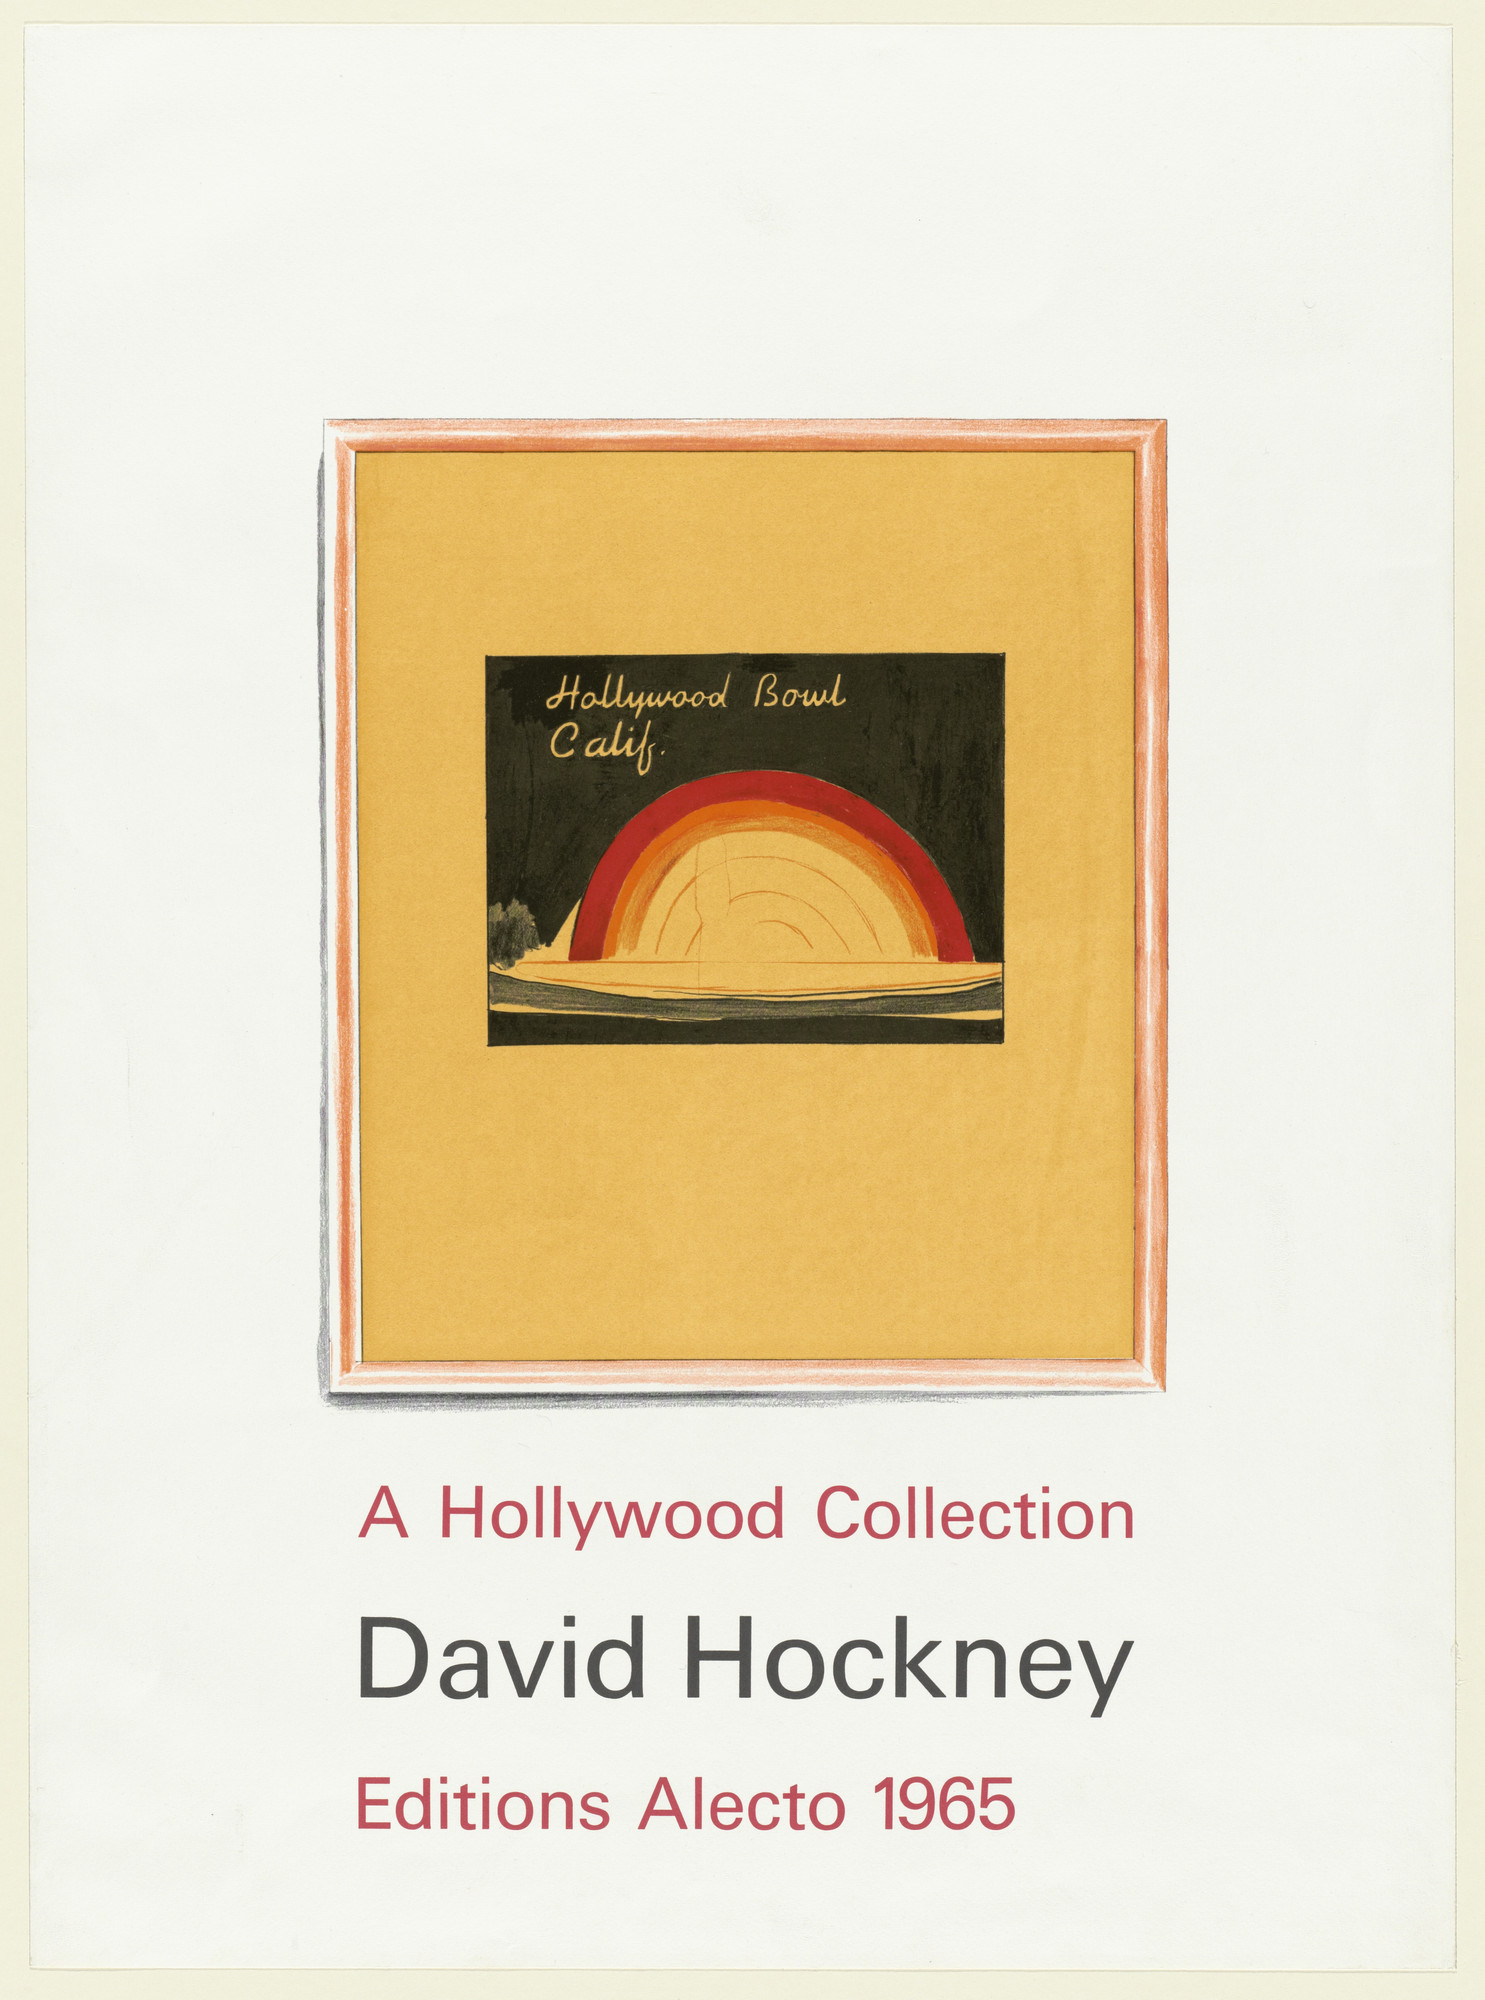 David Hockney. Title page from A Hollywood Collection. 1965